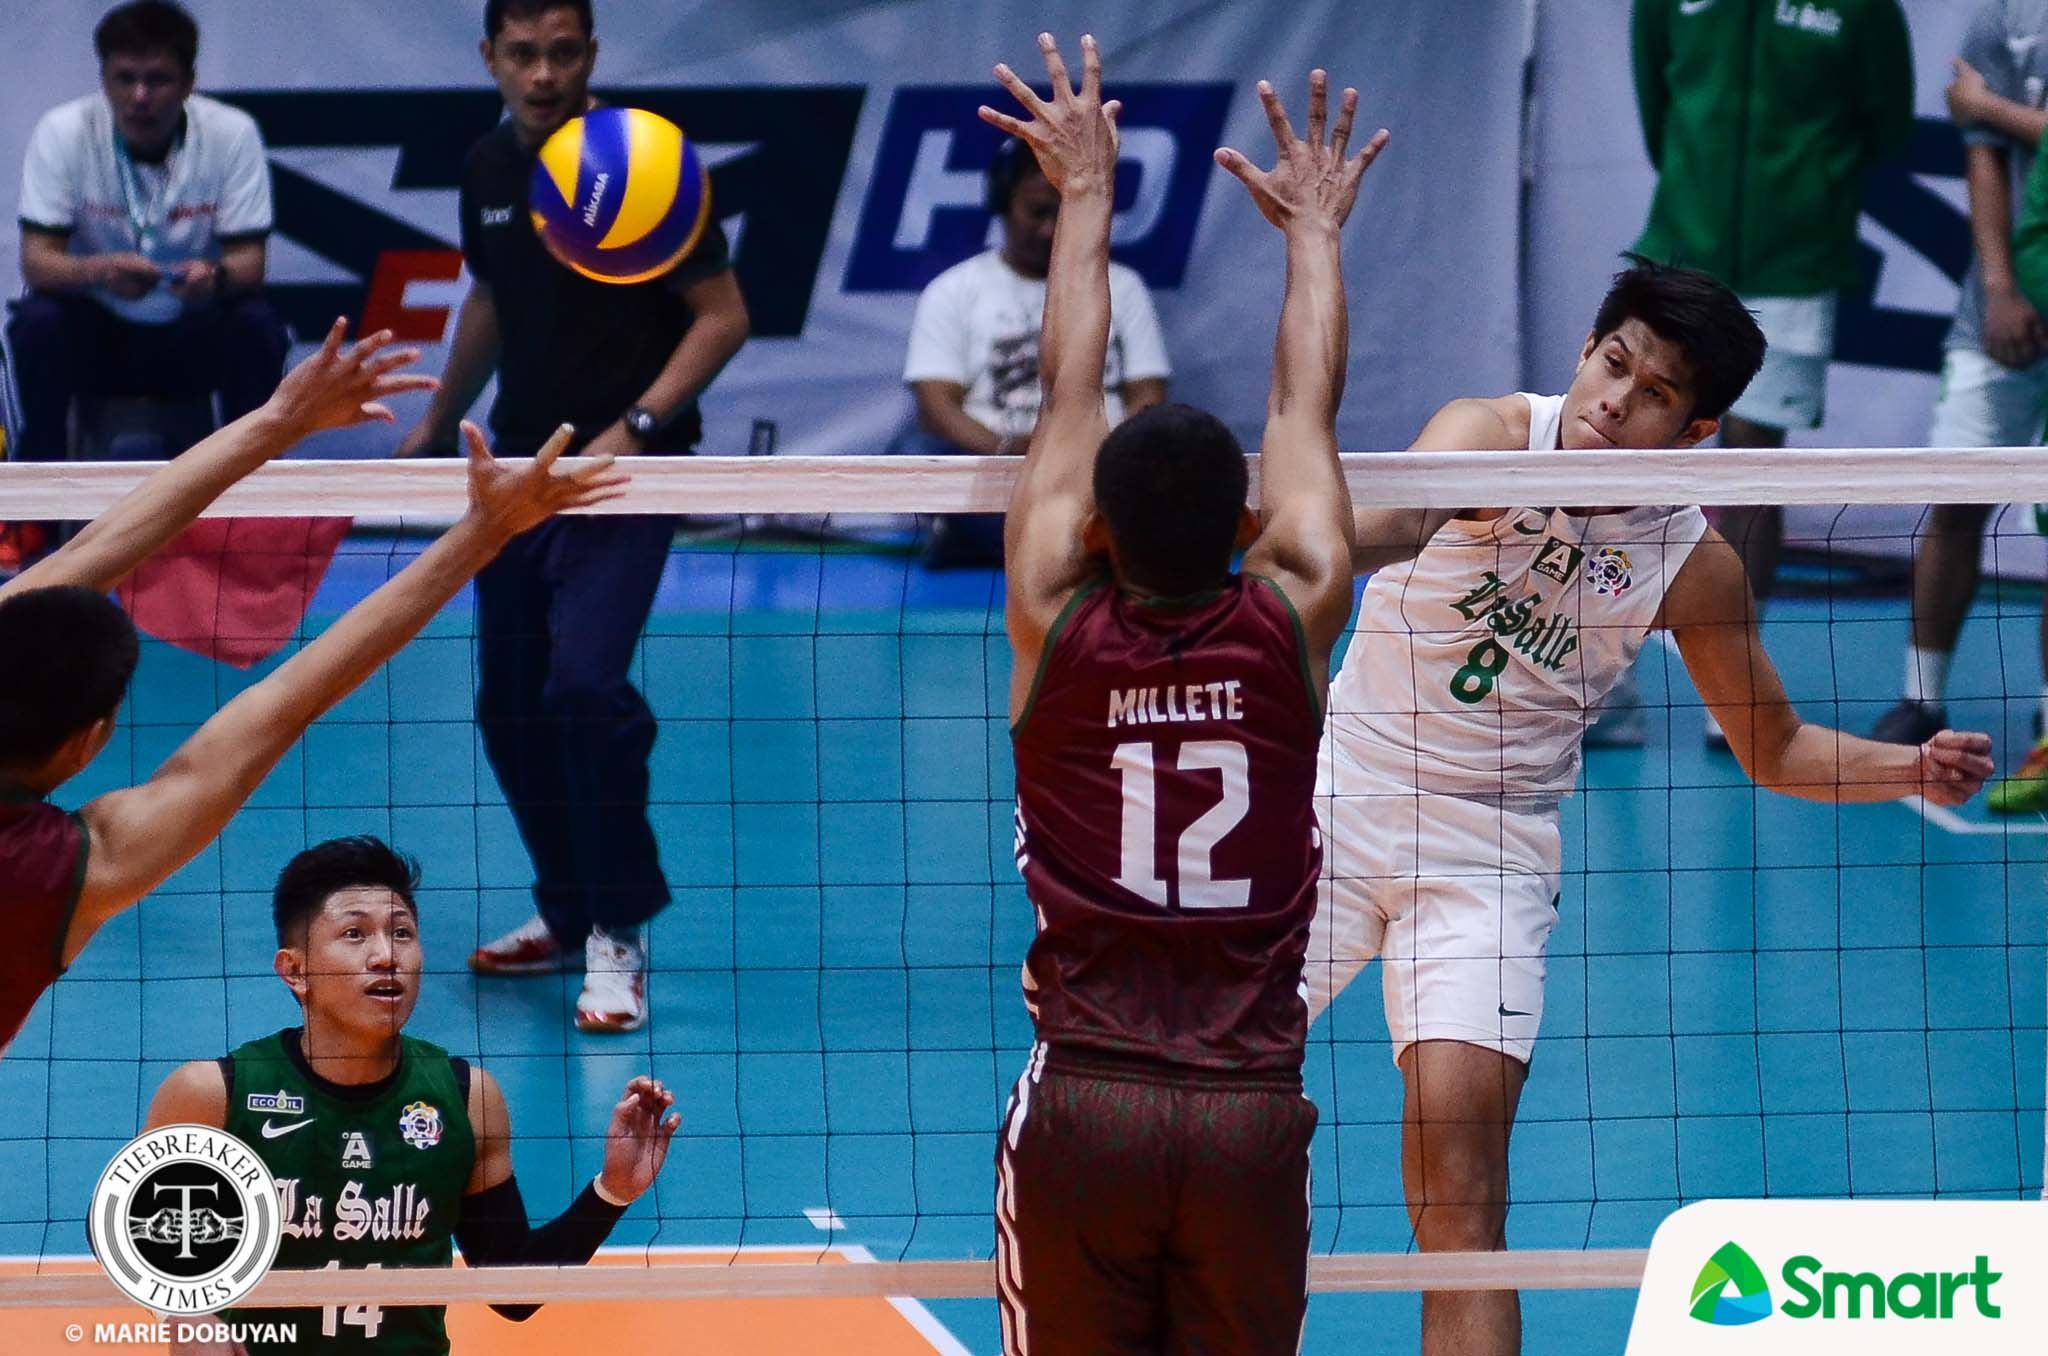 Tiebreaker Times Green Spikers squeak past Maroons, earn first win DLSU News UAAP UP Volleyball  Wendel Miguel Wayne Marco UP Men's Volleyball UAAP Season 80 Men's Volleyball UAAP Season 80 Raymark Woo Norman Miguel Mark Millete Jopet Movido Hans Chuacuco DLSU Men's Volleyball Arjay Onia